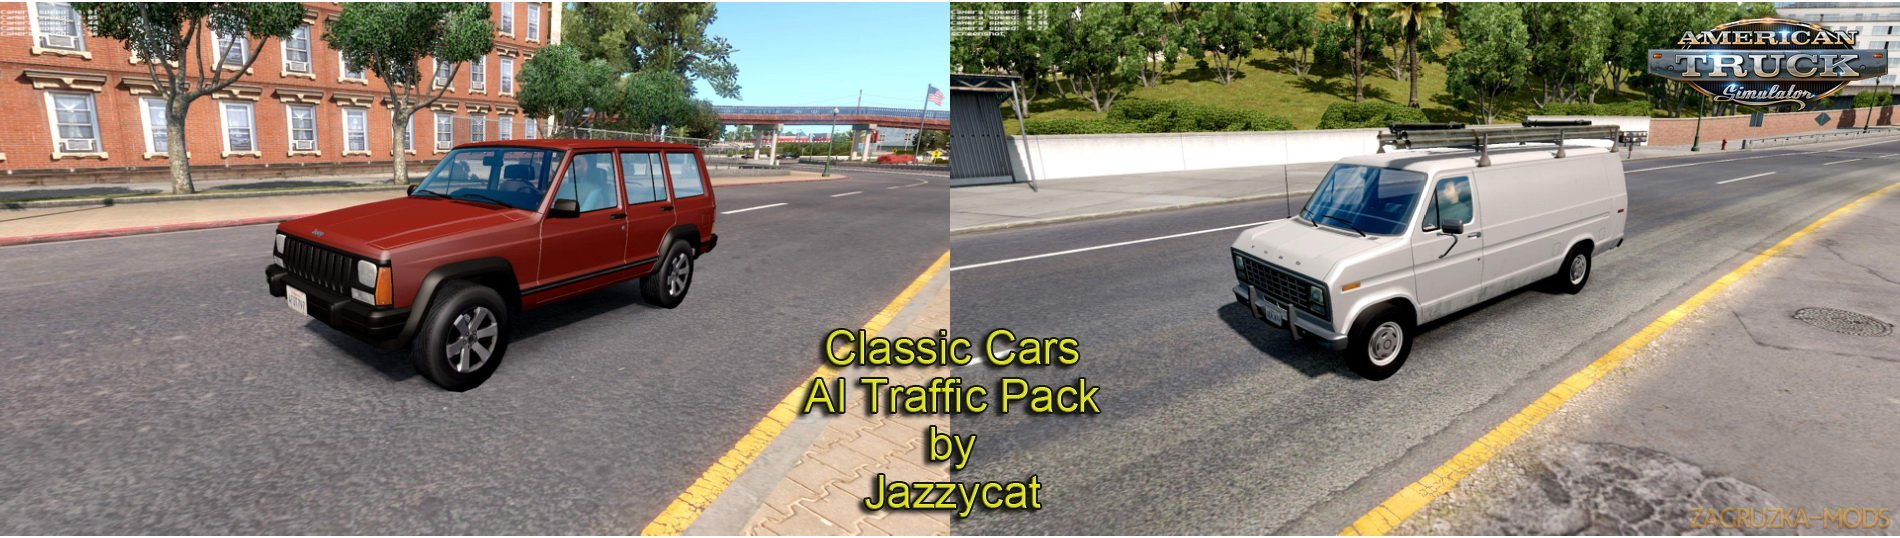 Classic cars AI Traffic Pack v1.5 by Jazzycat